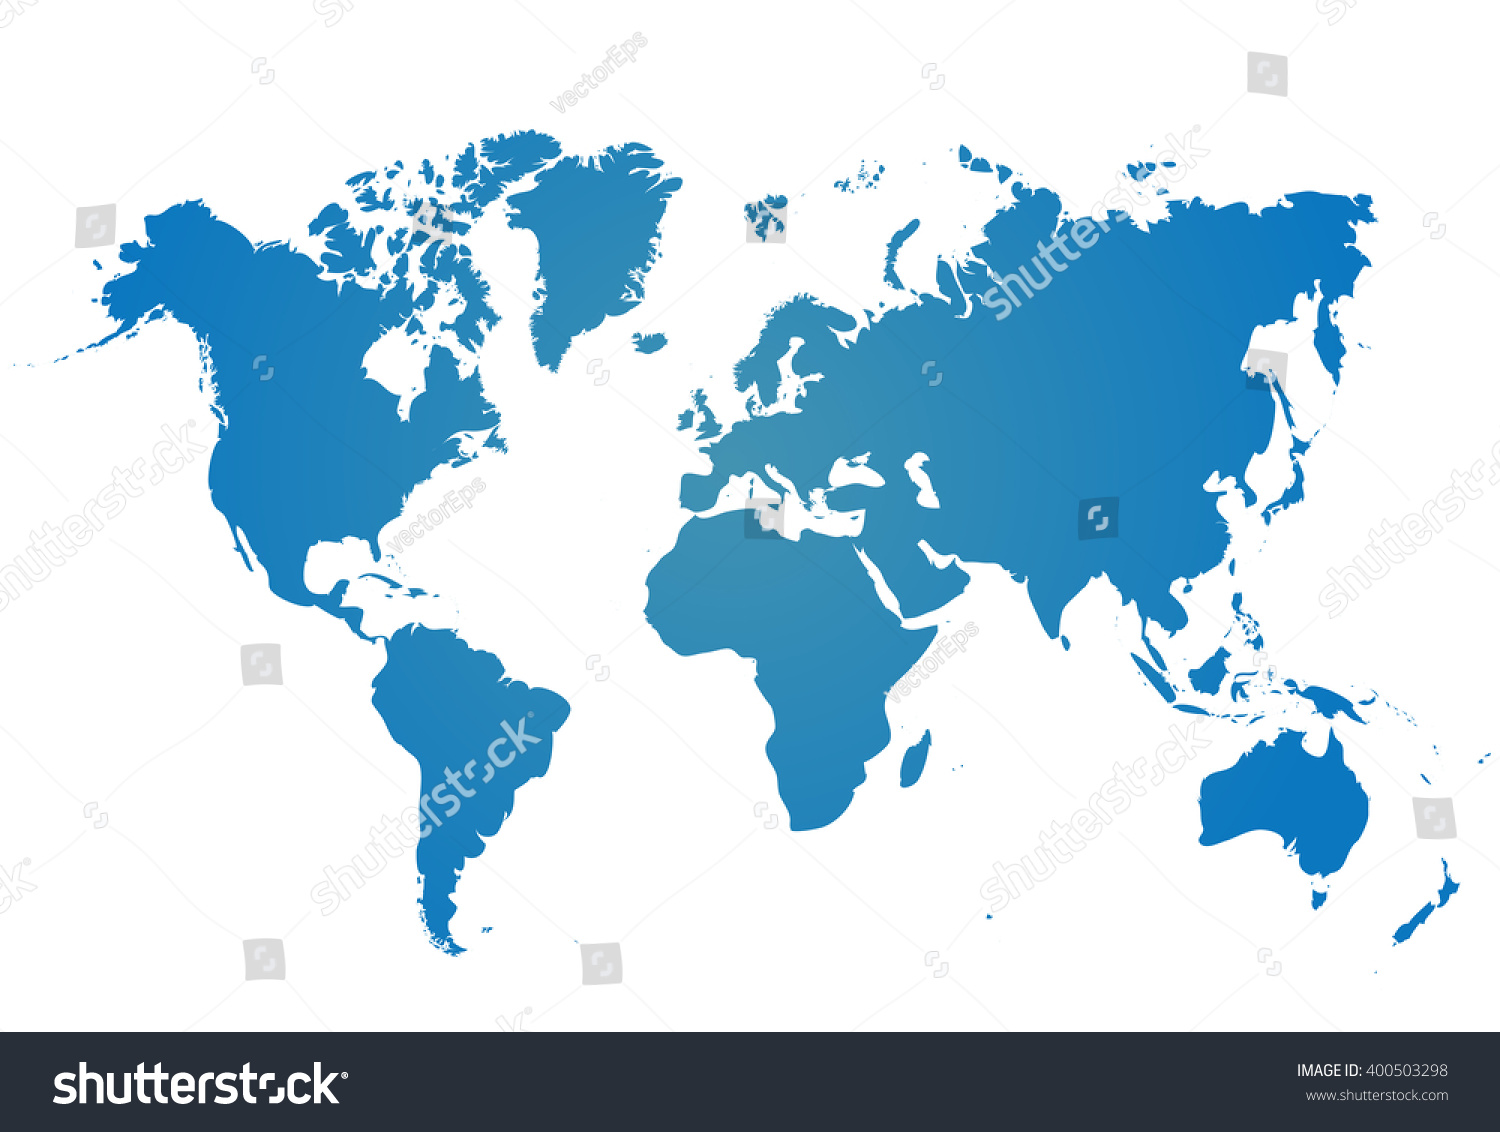 Blank blue similar world map isolated stock vector 2018 400503298 blank blue similar world map isolated on white background best popular worldmap vector template for gumiabroncs Image collections